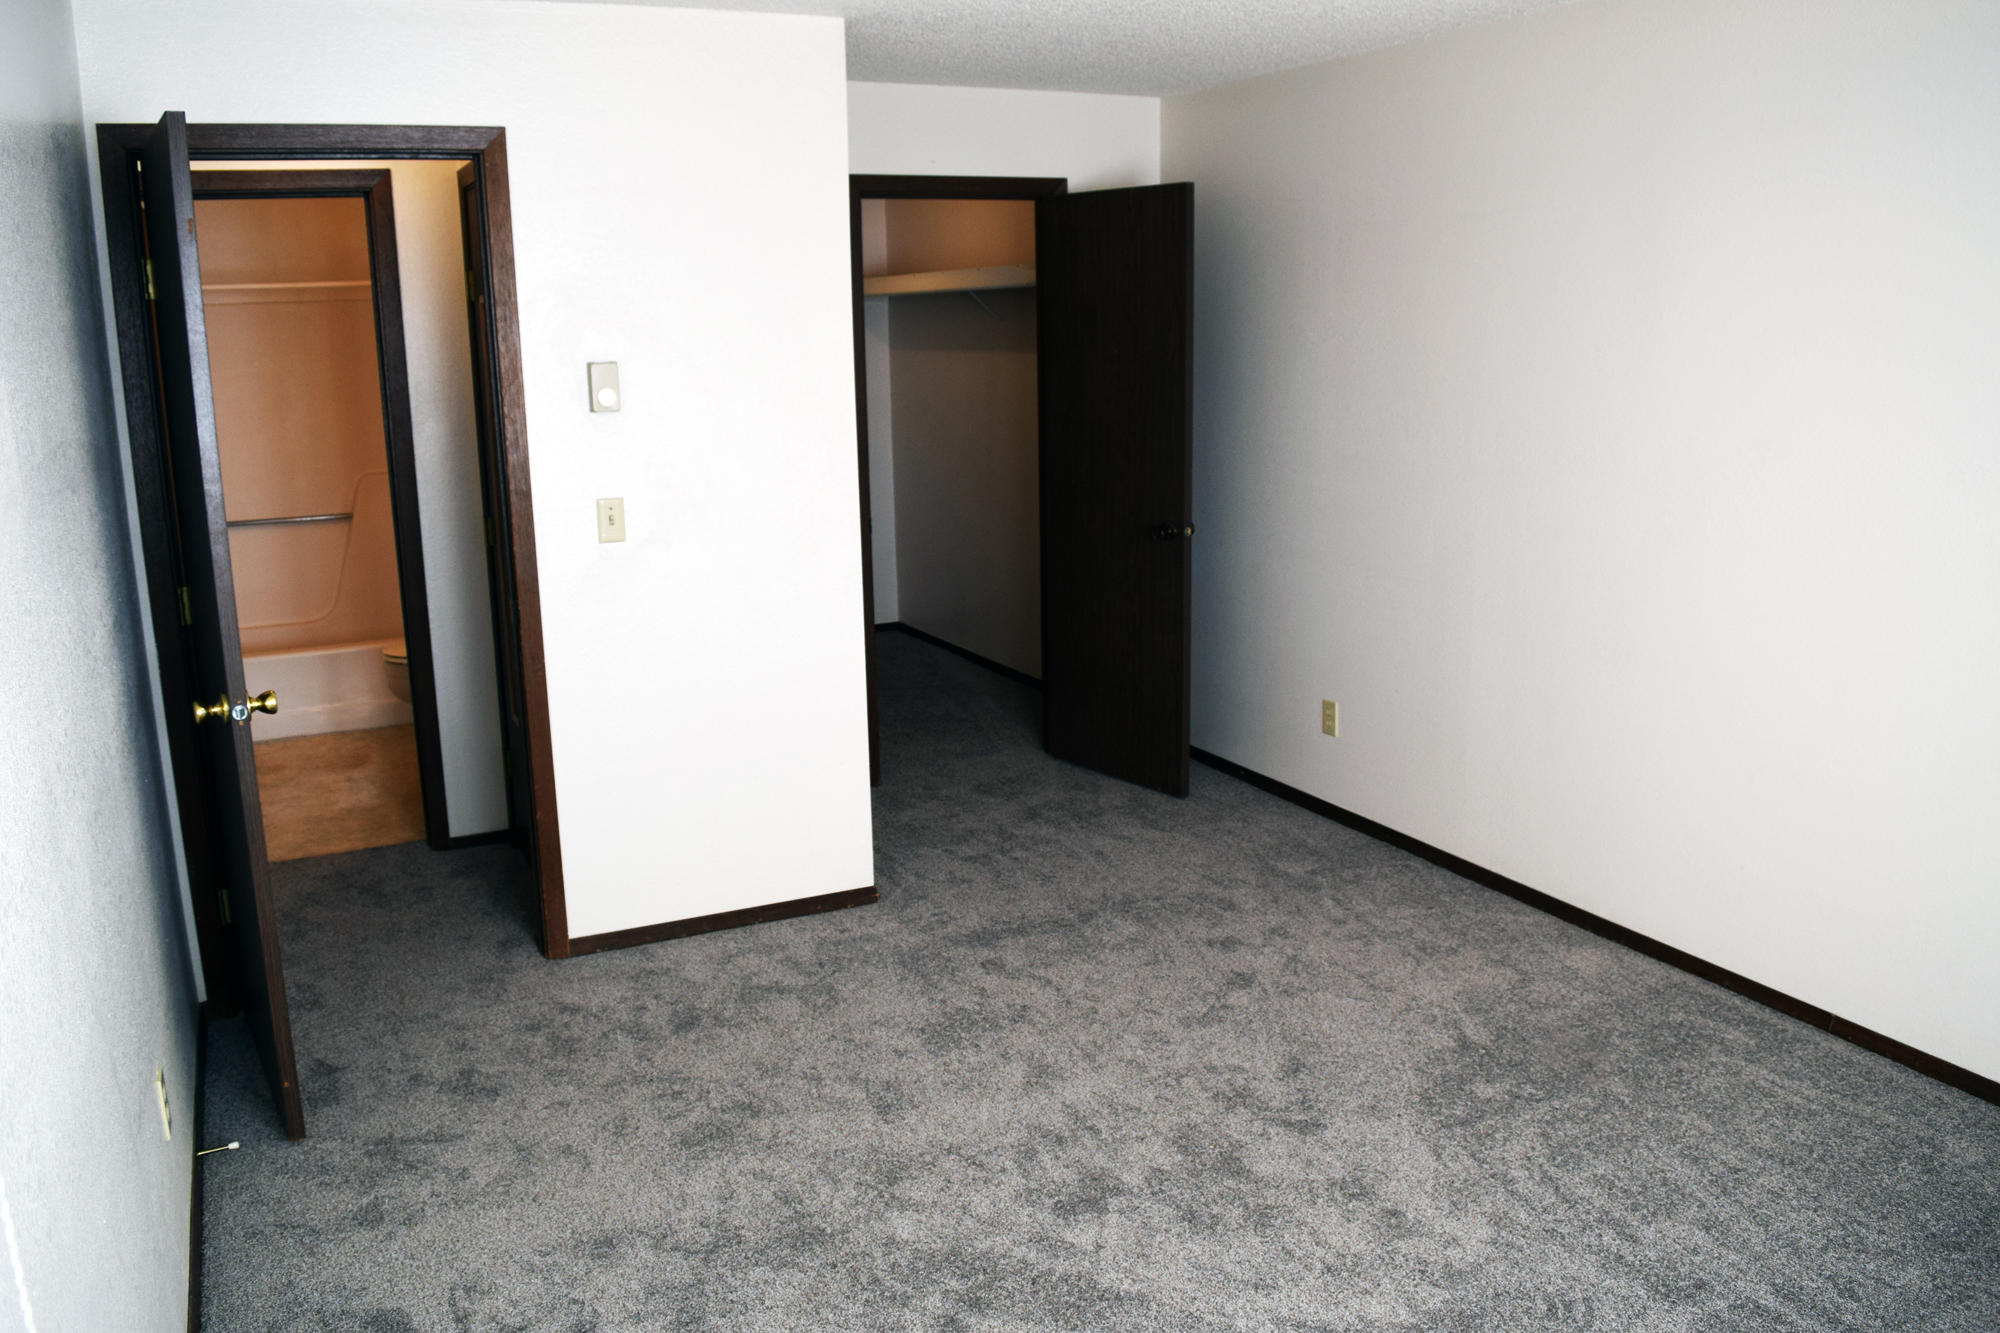 Valley View Apartments image 13